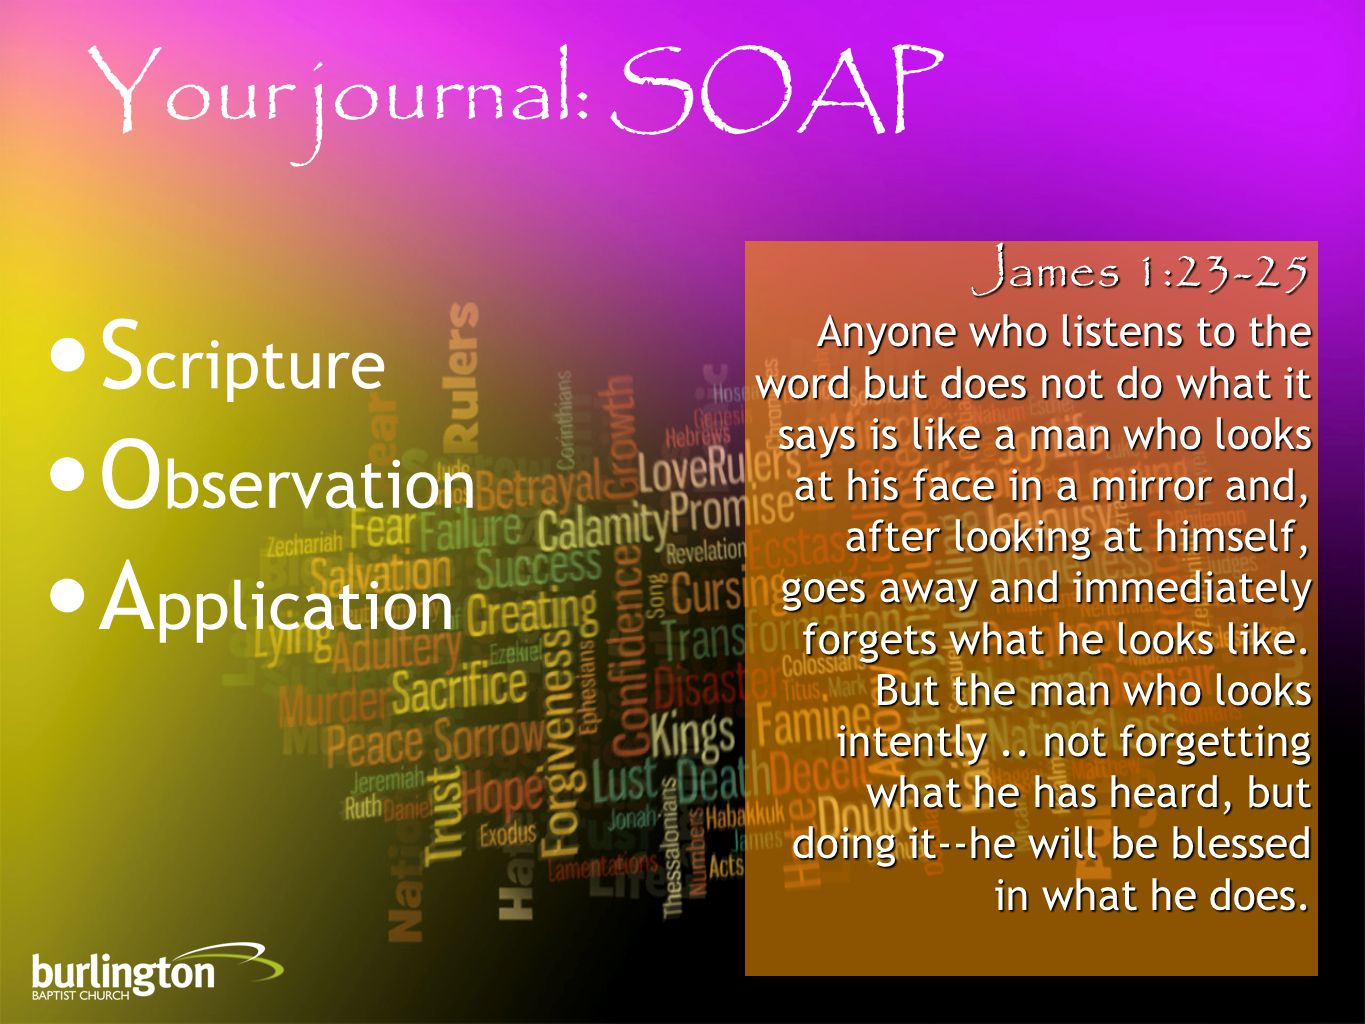 James 1:23-25 Anyone who listens to the word but does not do what it says is like a man who looks at his face in a mirror and, after looking at himsel